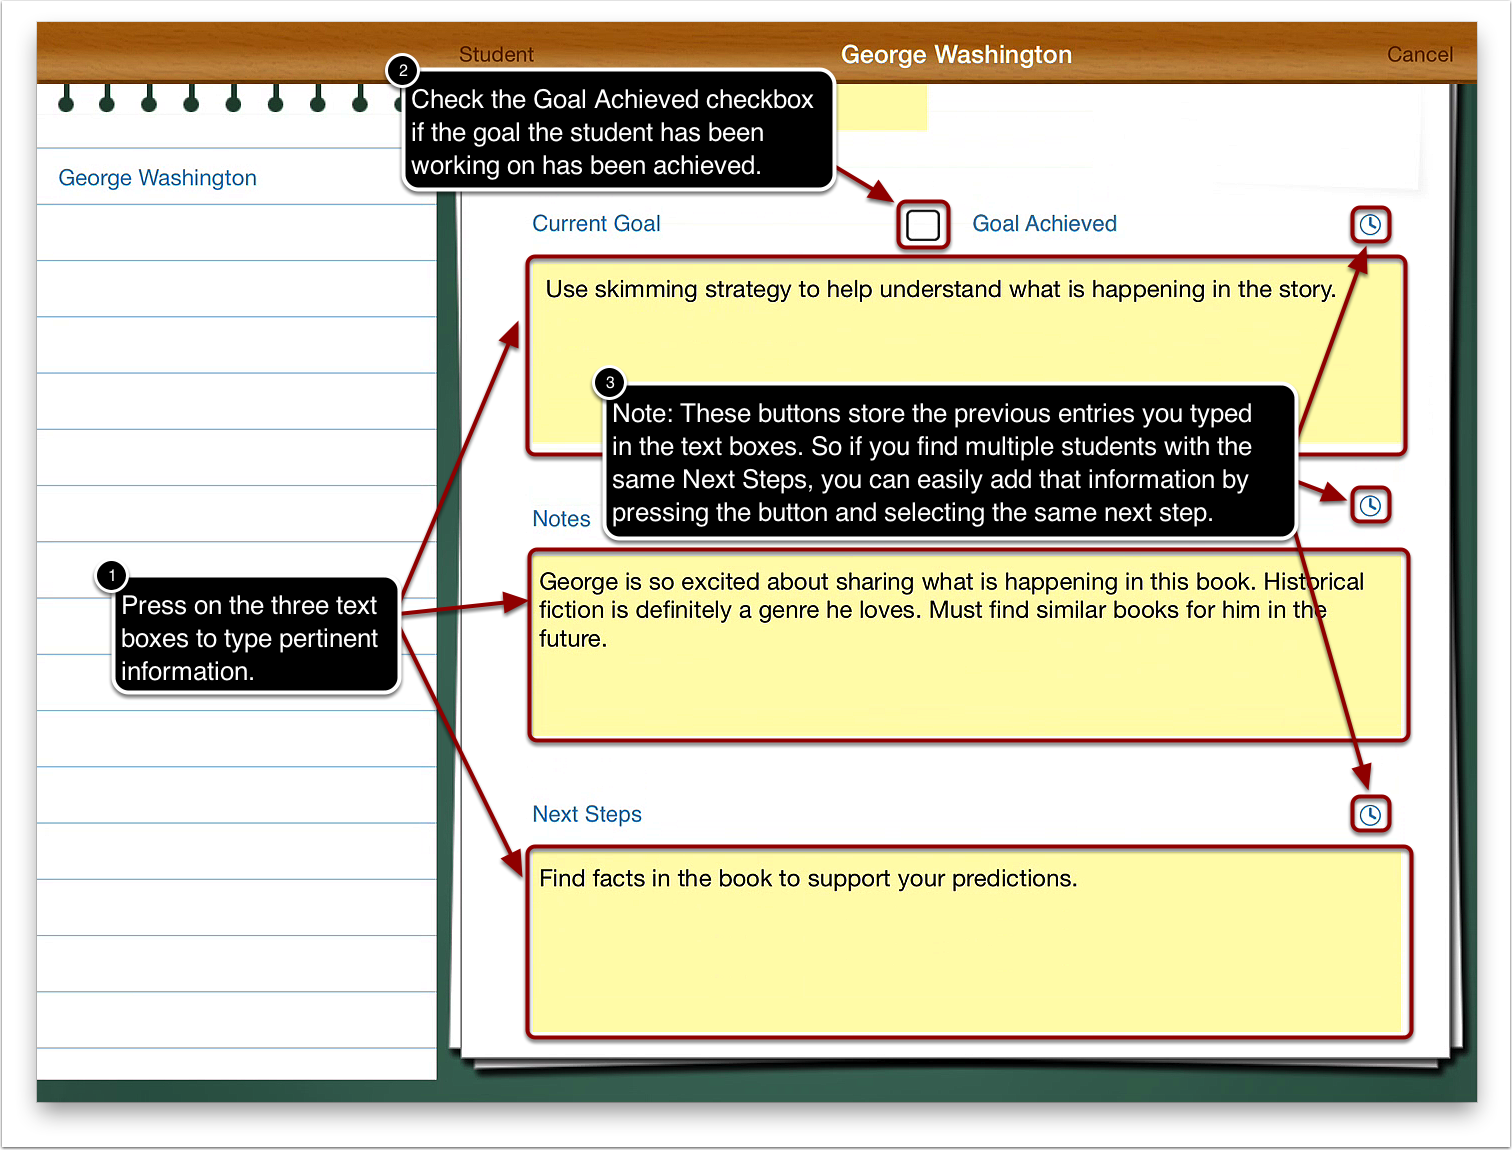 6a. Press on the Current Goal, Notes, and Next Steps text boxes to type pertinent information.  6b. Press the Goal Achieved checkbox if the student has achieved the current goal.  6c. Note: The clock button on the top right of the three text boxes allow you to access comments that you typed previously. So for example, if you find that you have multiple students with the same Next Steps, you can easily add that comment by pressing the clock button and selecting the comment.